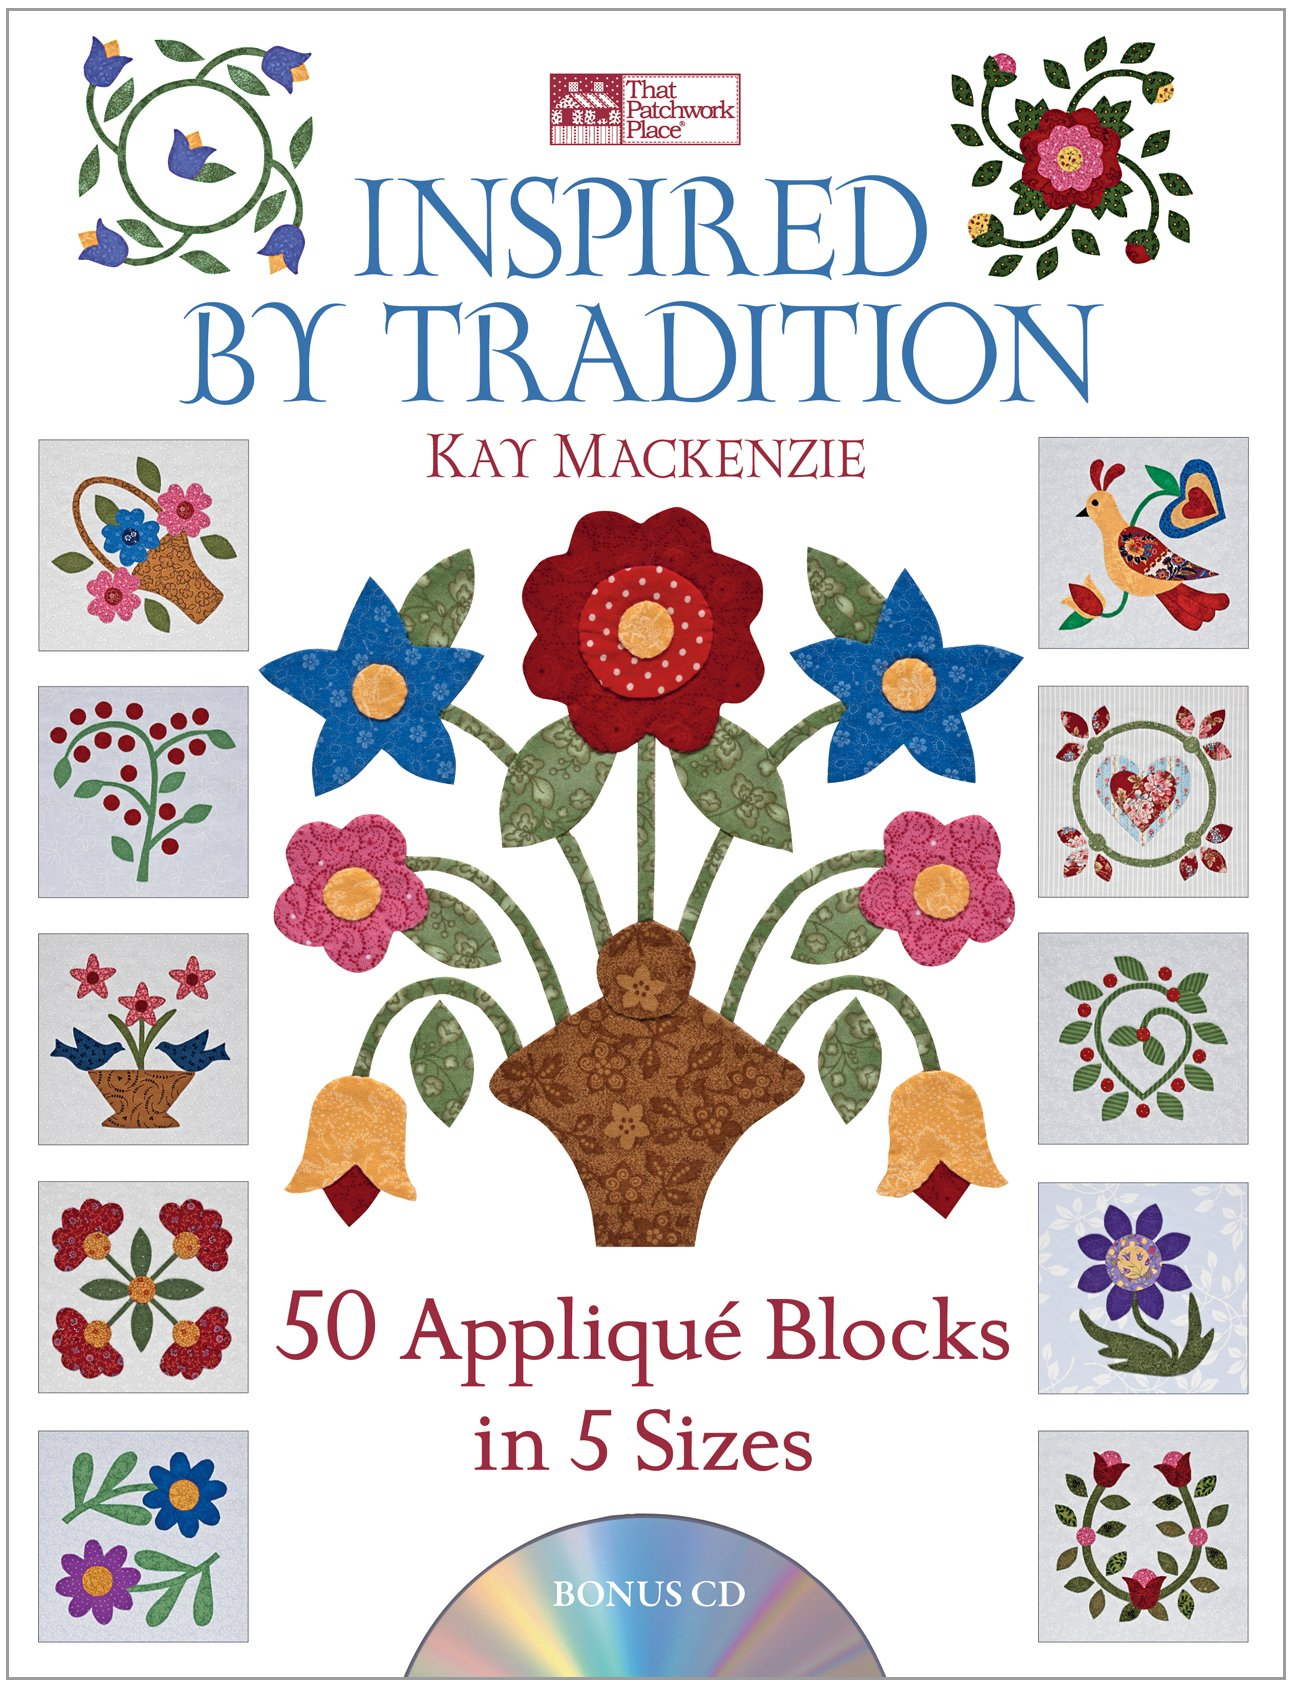 Inspired Tradition Appliqu%C3%A9 Blocks Sizes